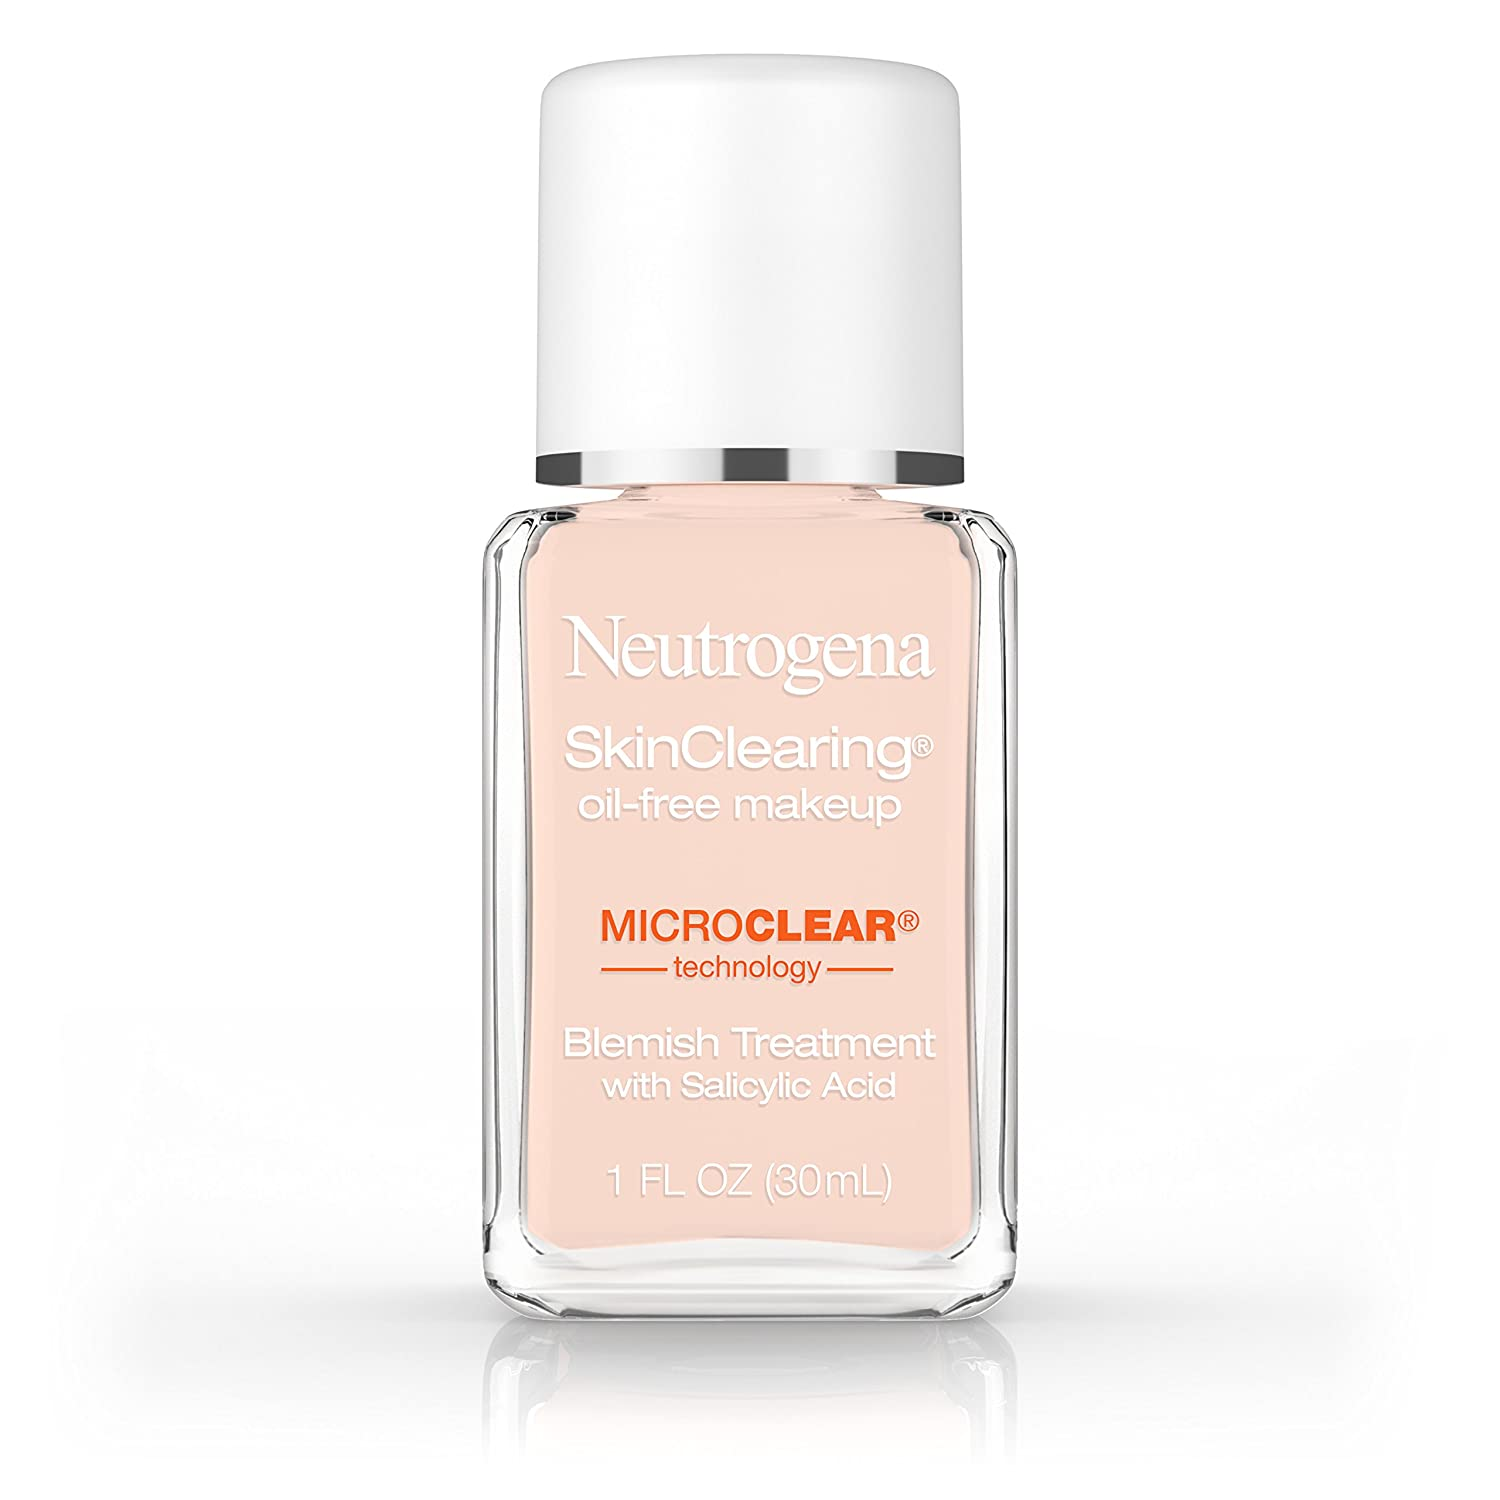 Skin Clearing Makeup Neutrogena